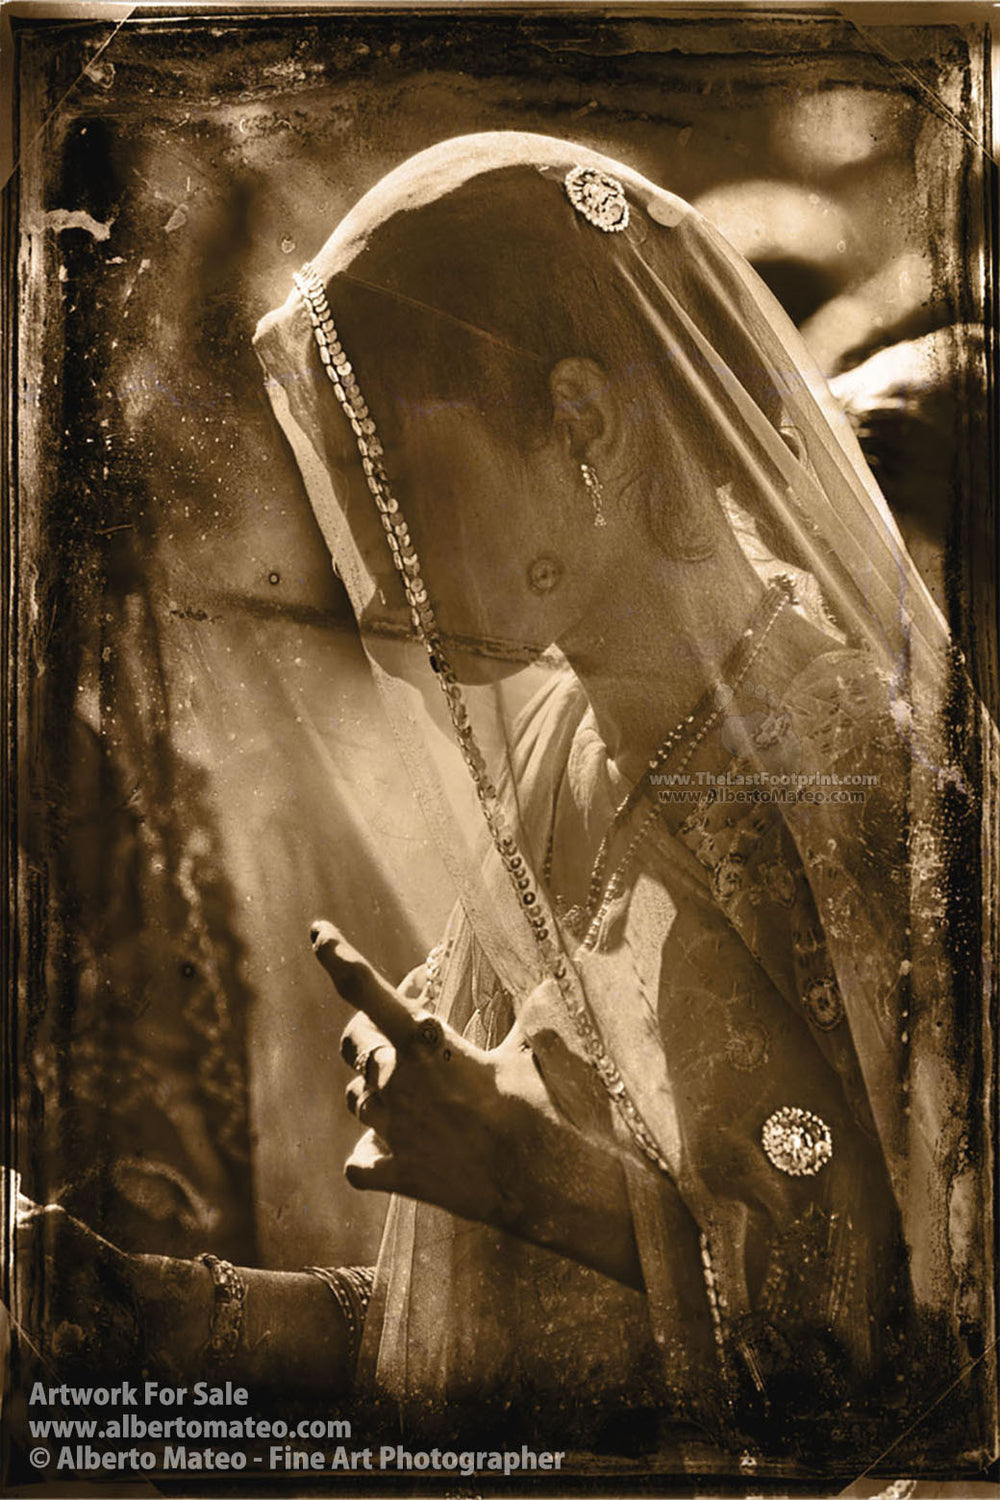 Rajastani Woman, Rajastan, India. [1/5] | Limited Edition Fine Art Print.